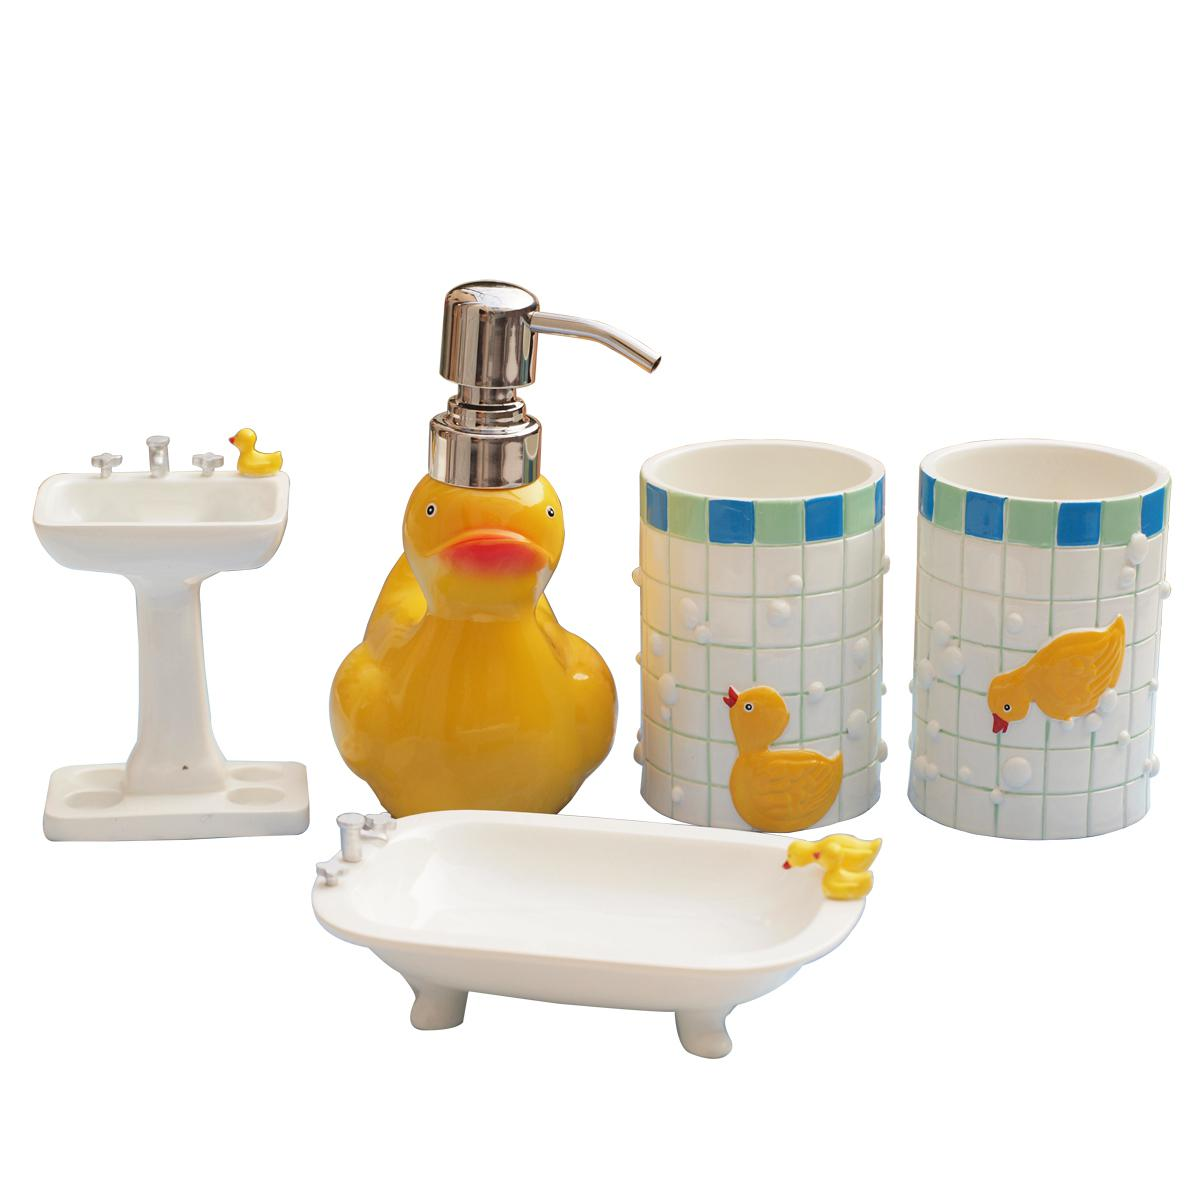 2018 Cartoon Duck Wash Set Resin Bathroom Decoration Tooth Brush Holder  Daily Necessities From Dreamno1, $69.77 | Dhgate.Com